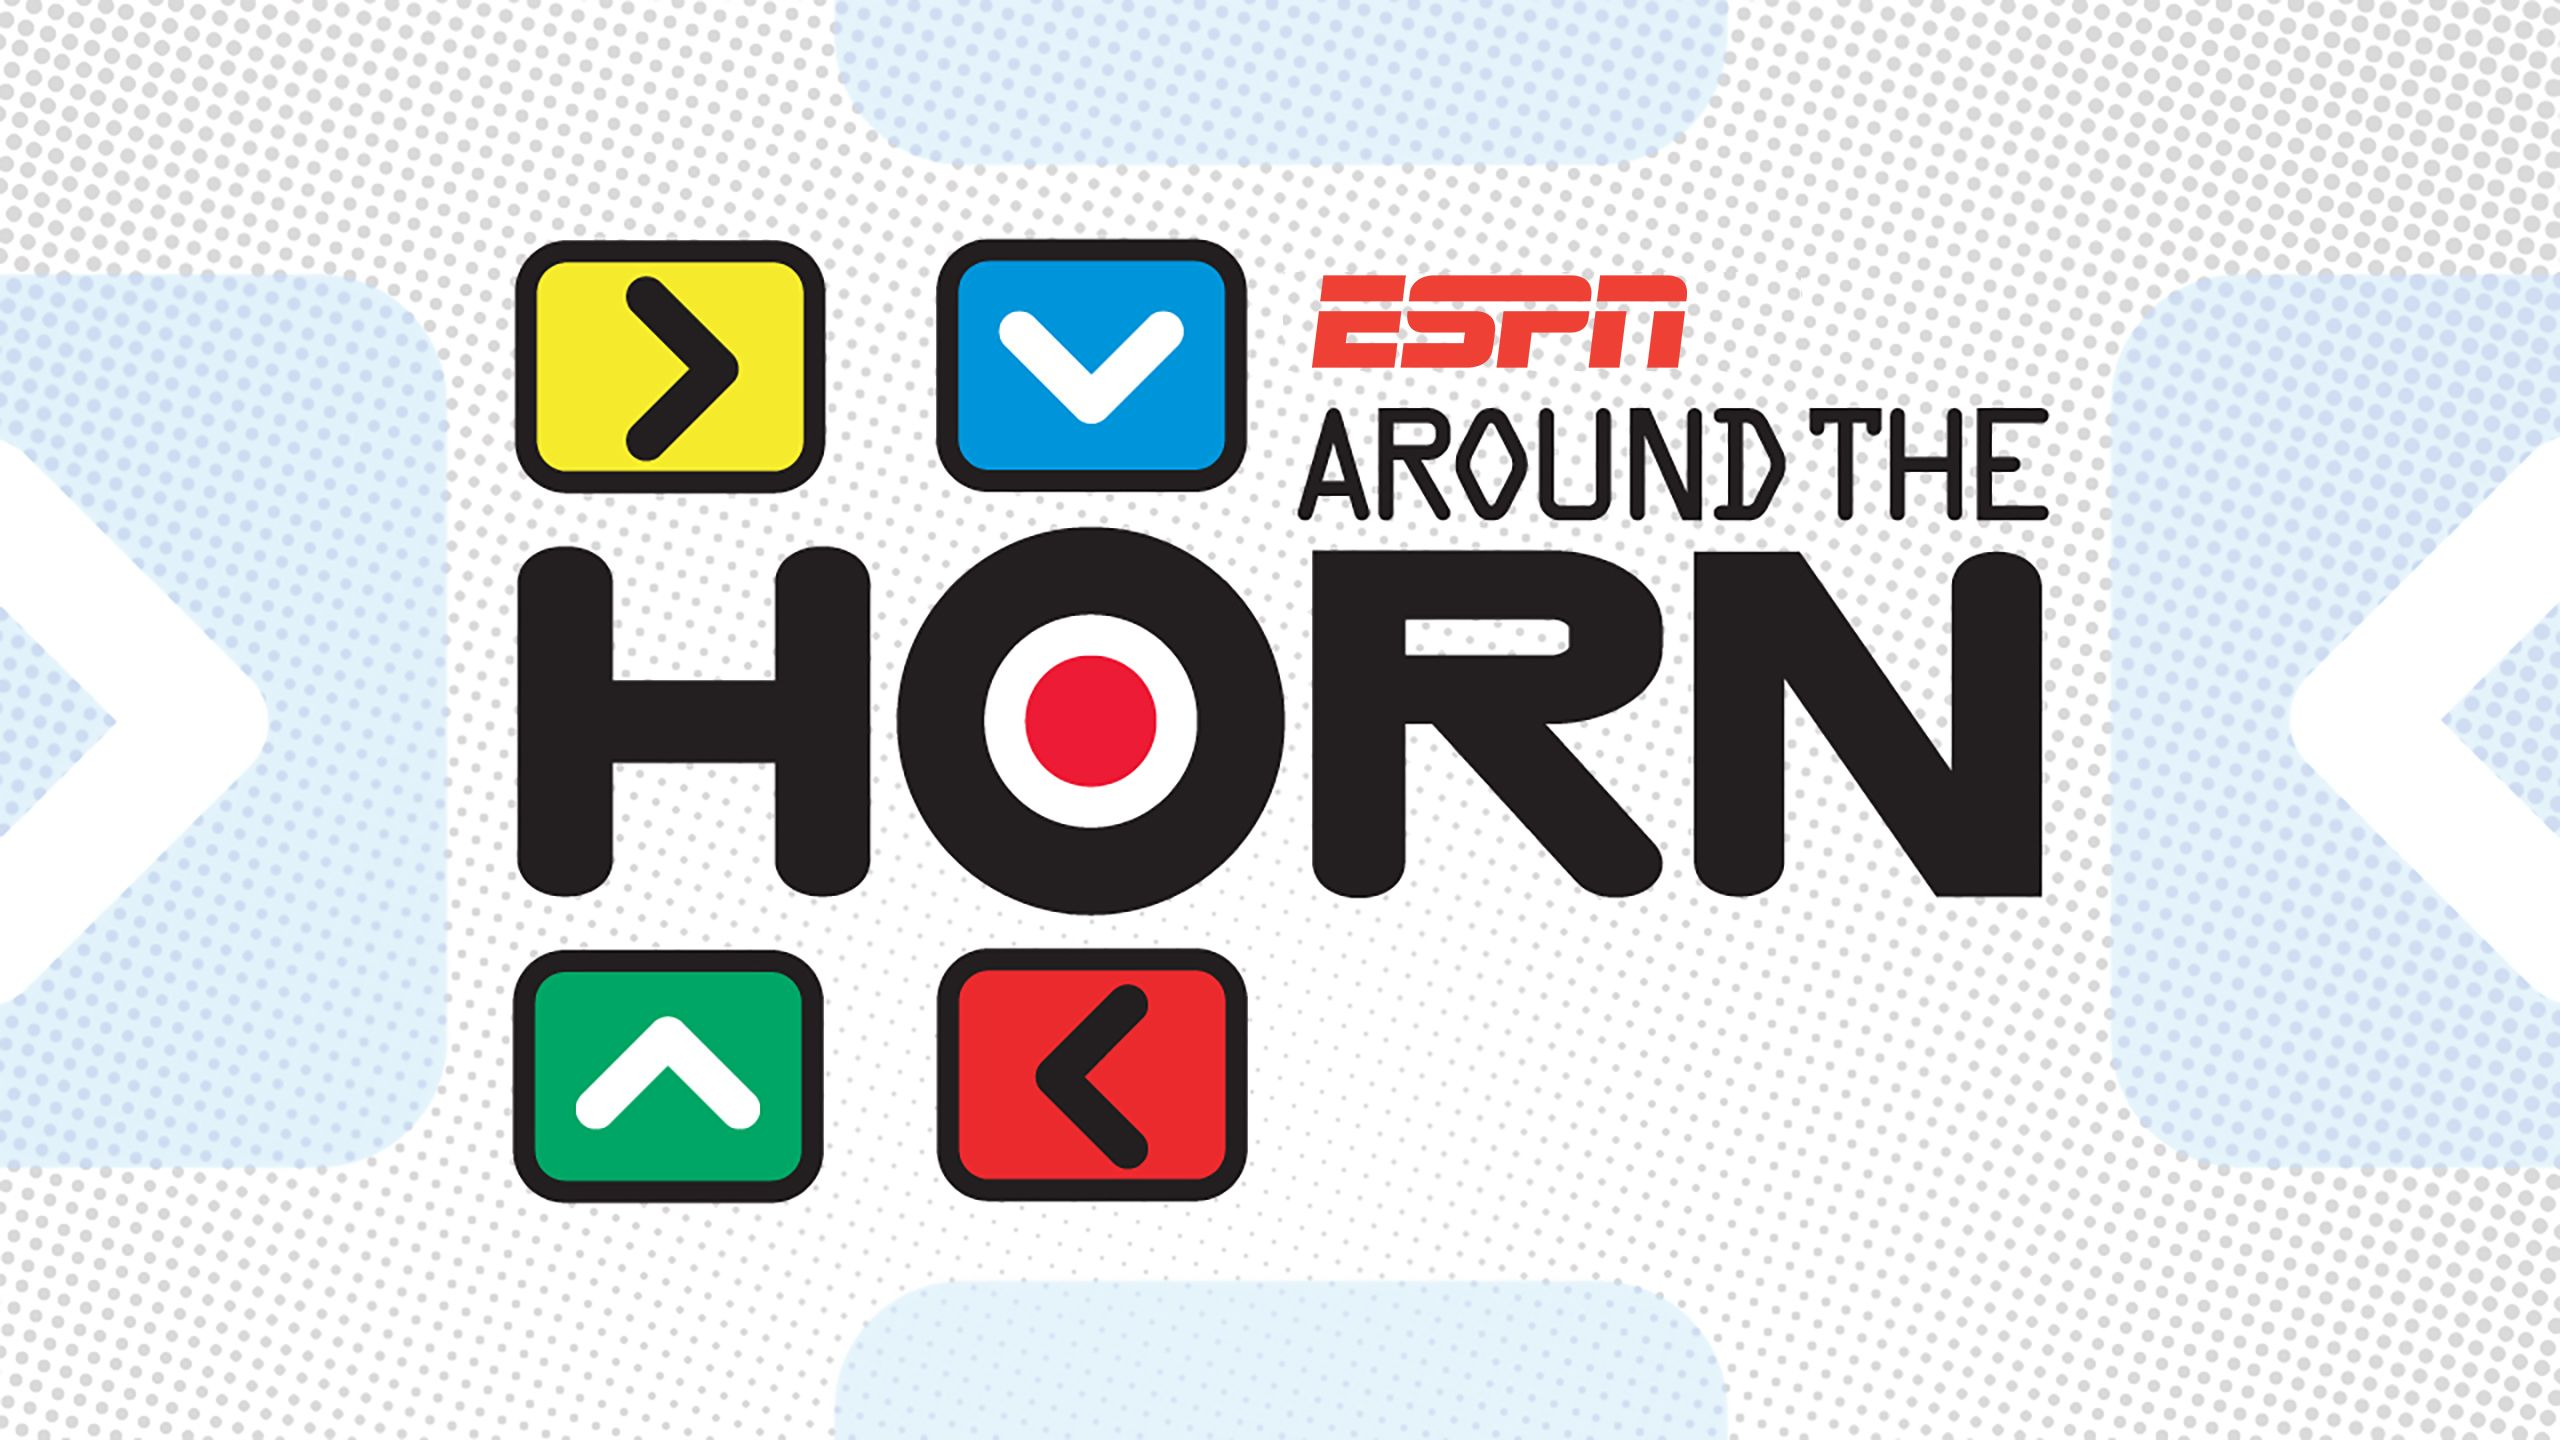 Tue, 10/17 - Around The Horn